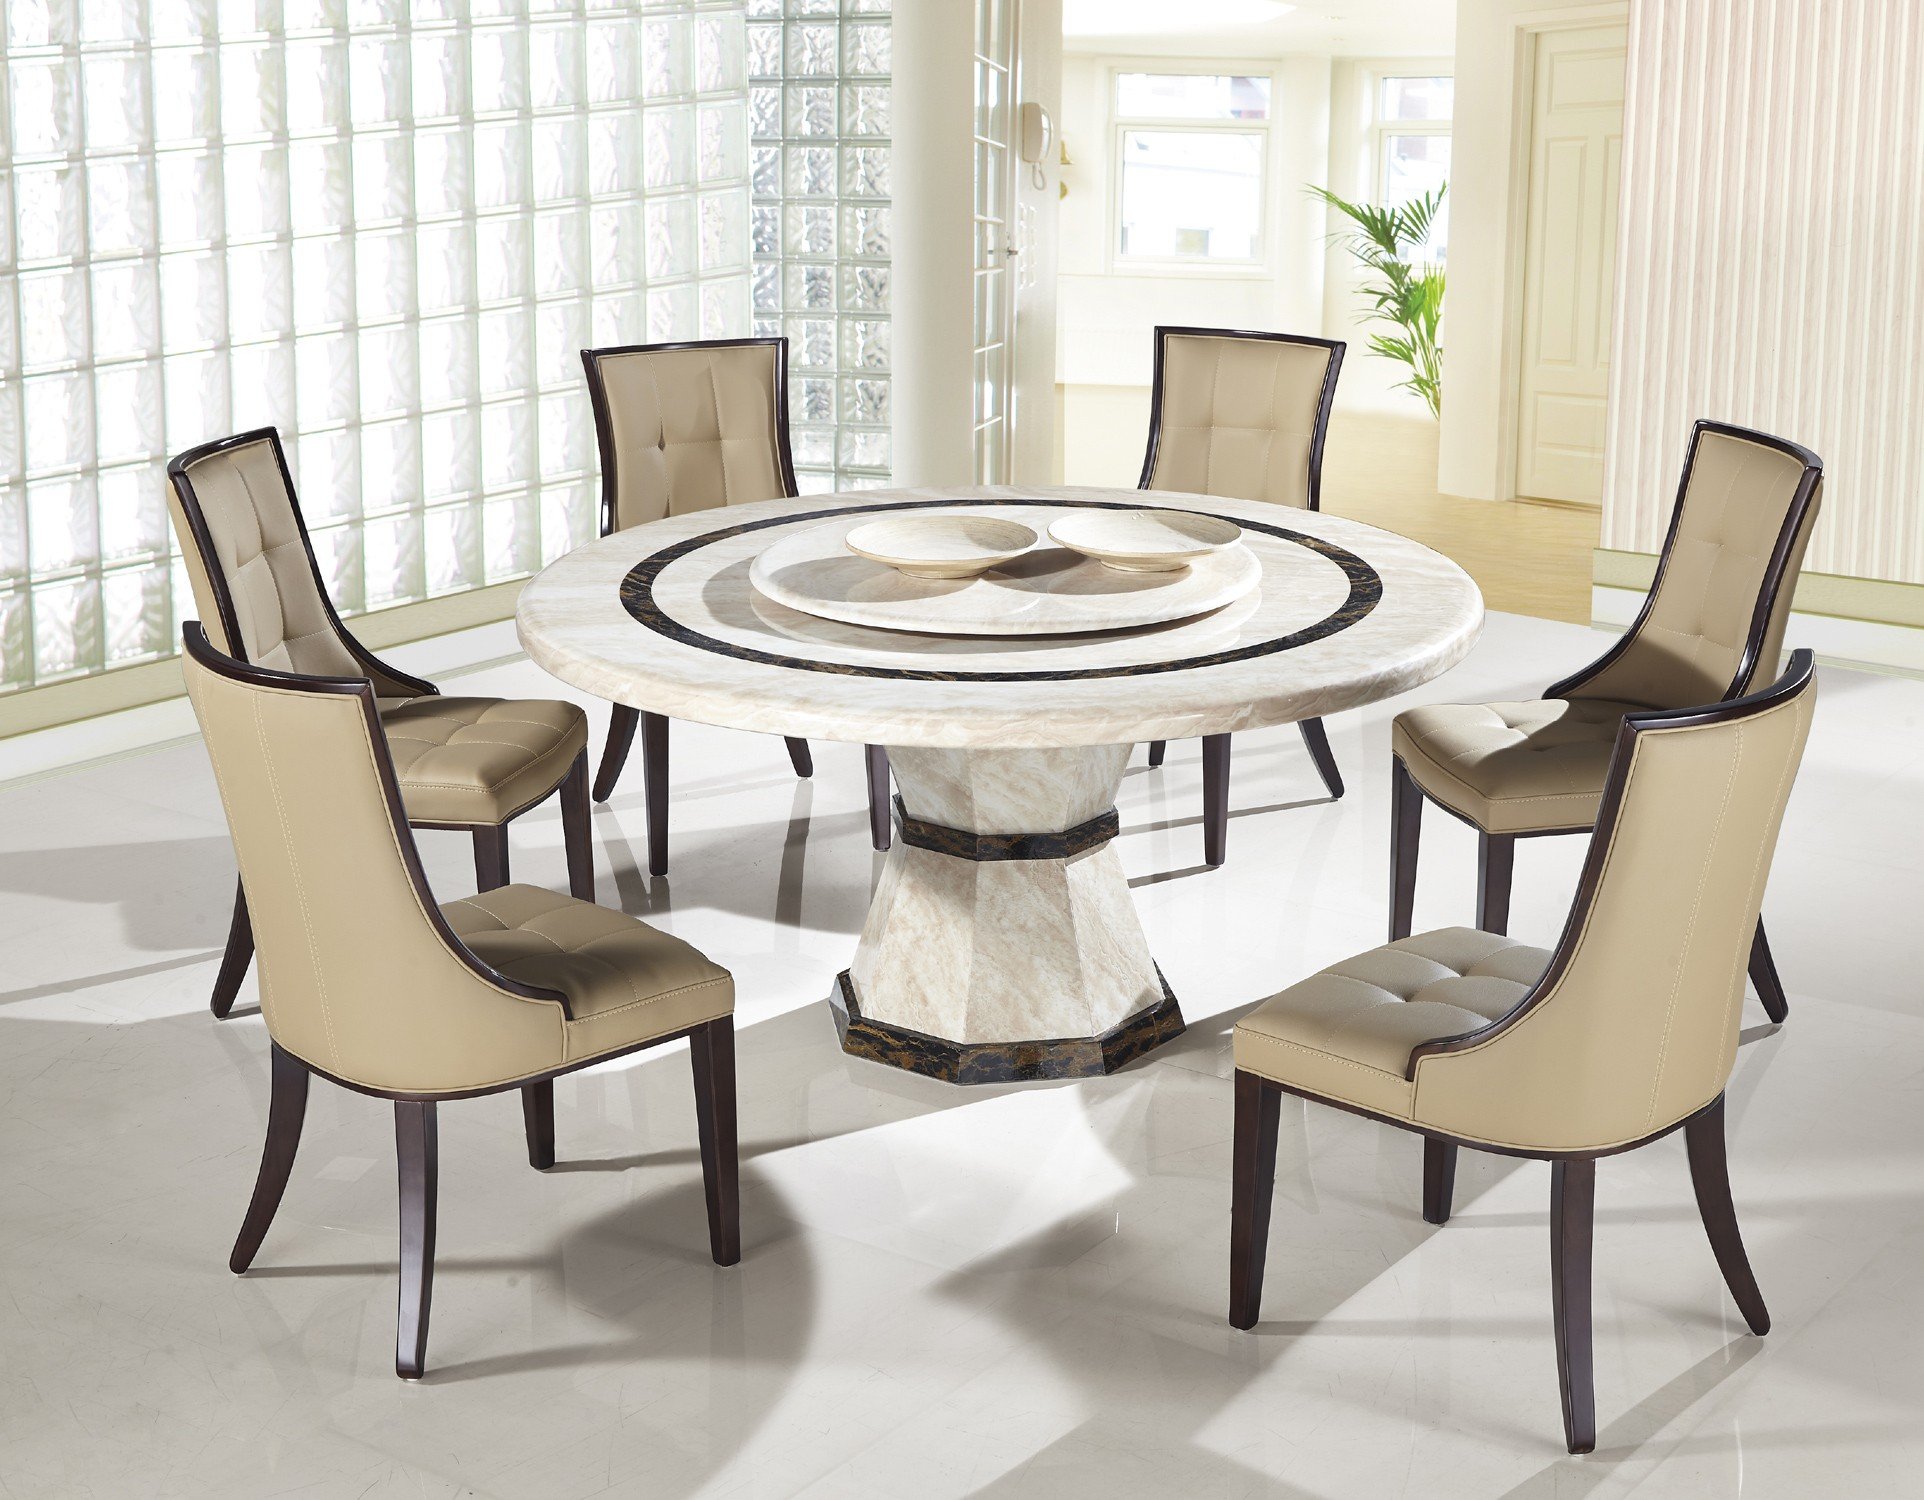 Modern Round Dining Set Shop For Affordable Home Furniture Decor - Contemporary round kitchen table and chairs